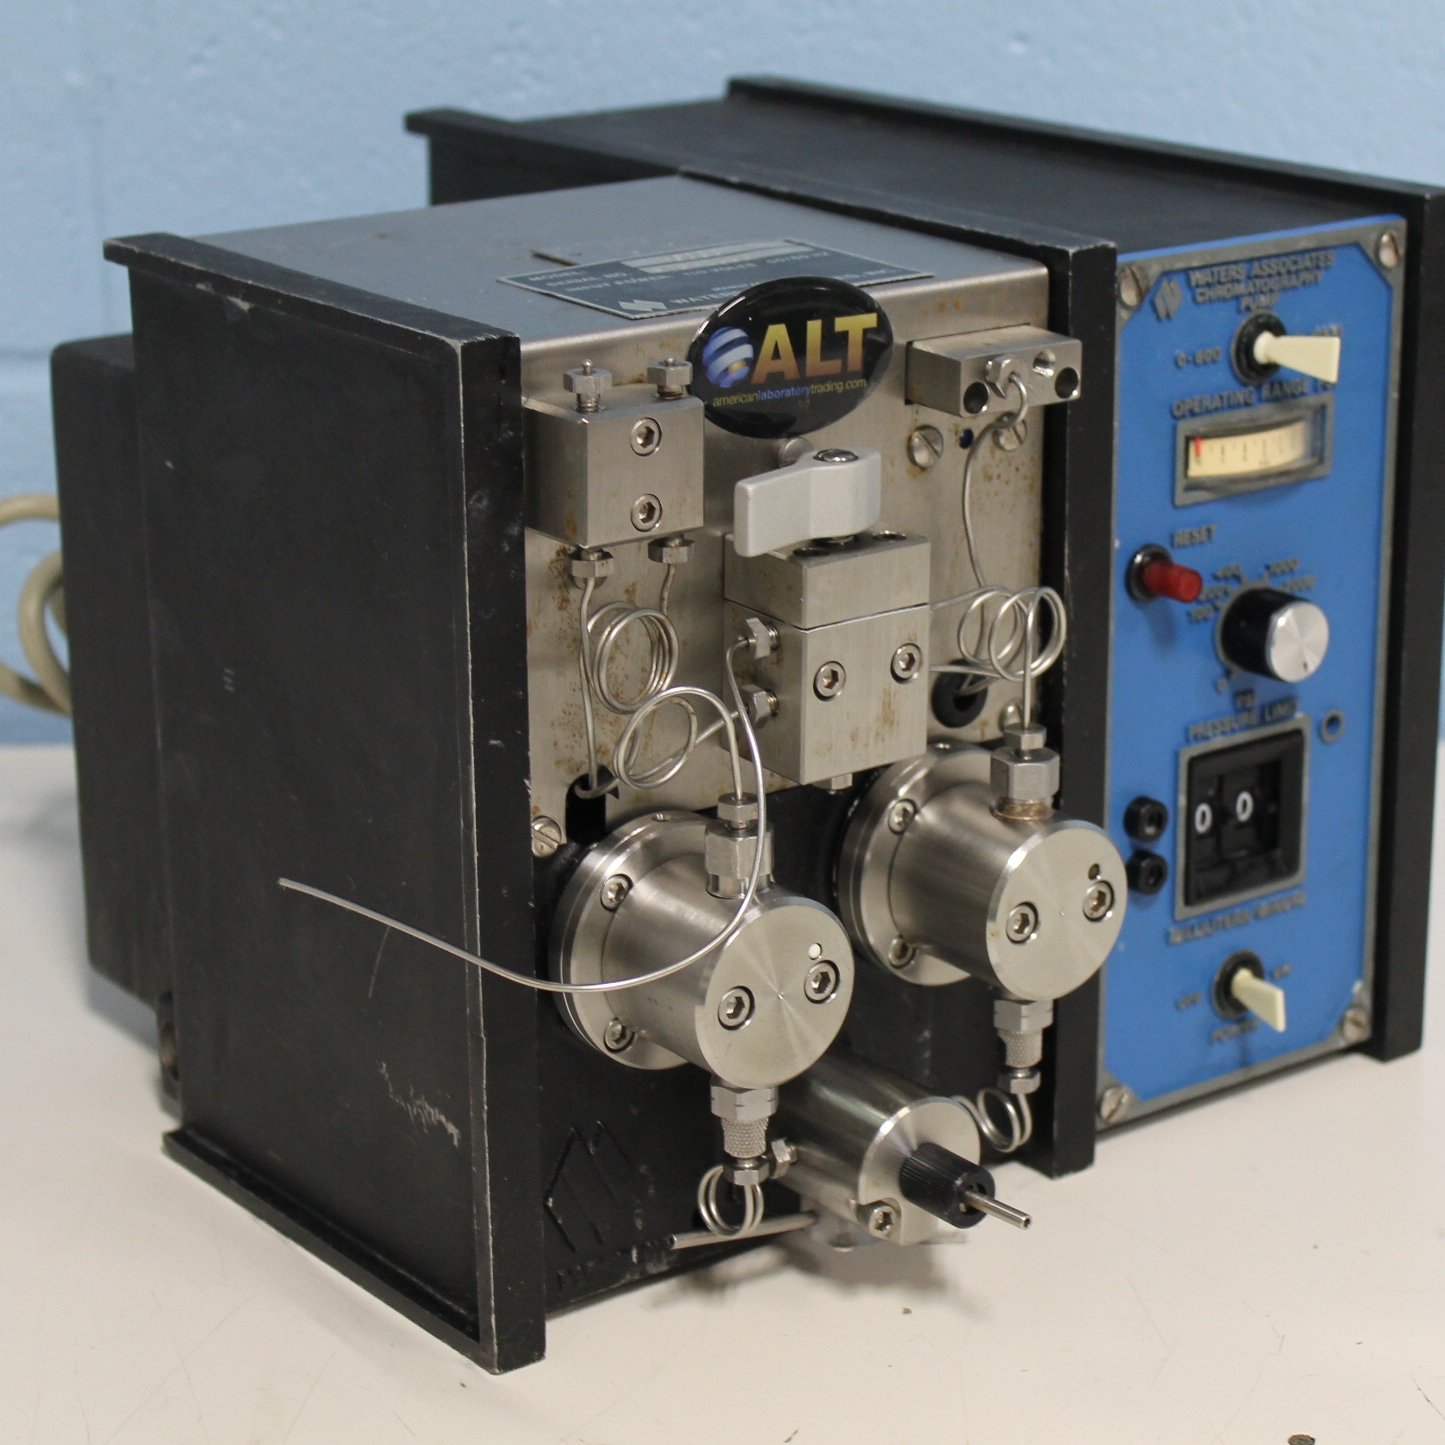 Waters M-6000 Solvent Delivery System Chromatography Pump Image